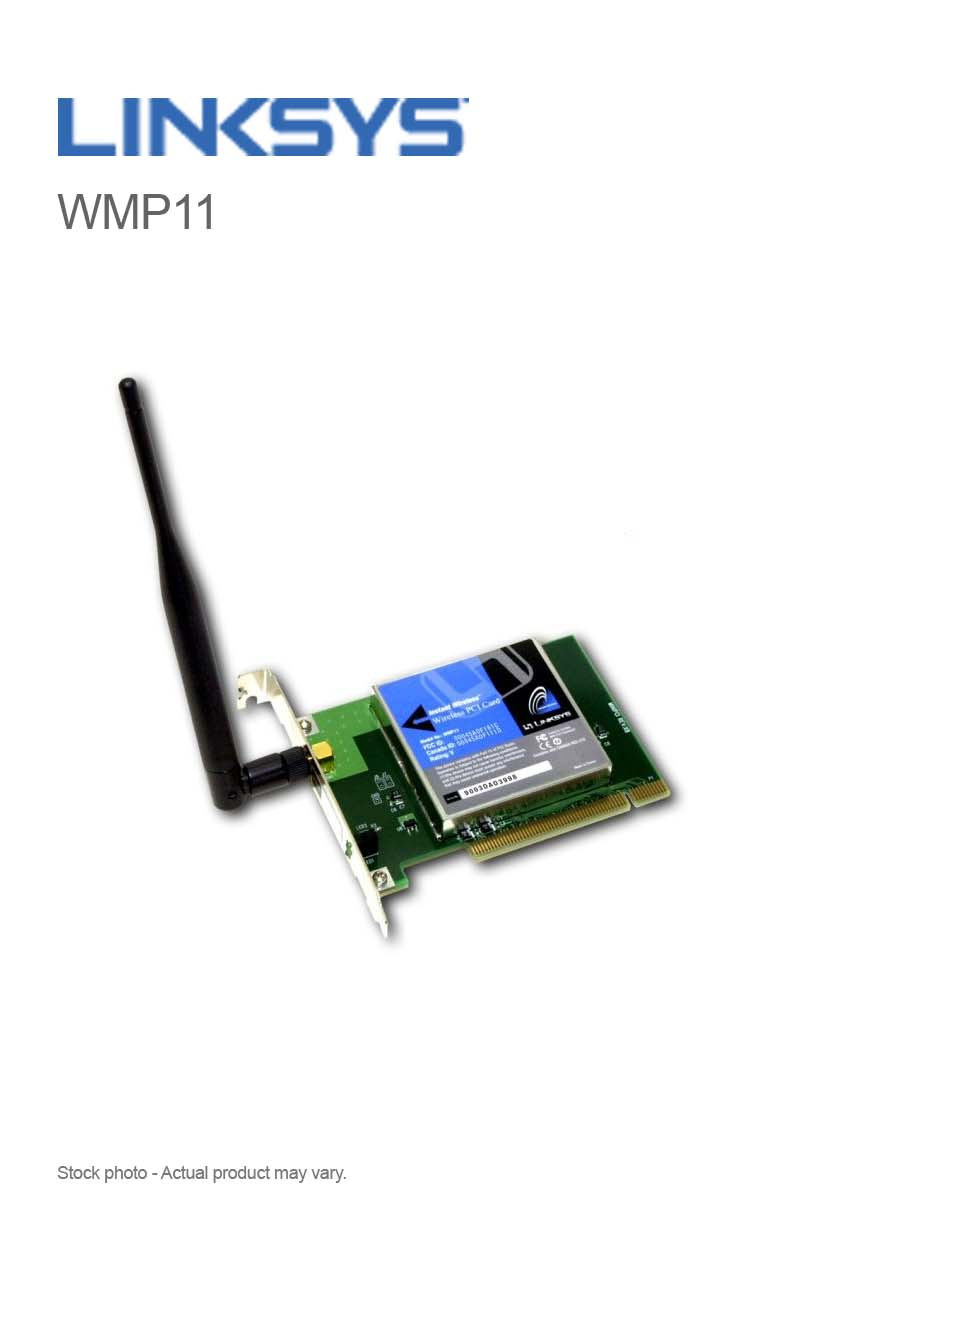 WIRELESS B PCI ADAPTER WMP11 DRIVER FOR WINDOWS 7